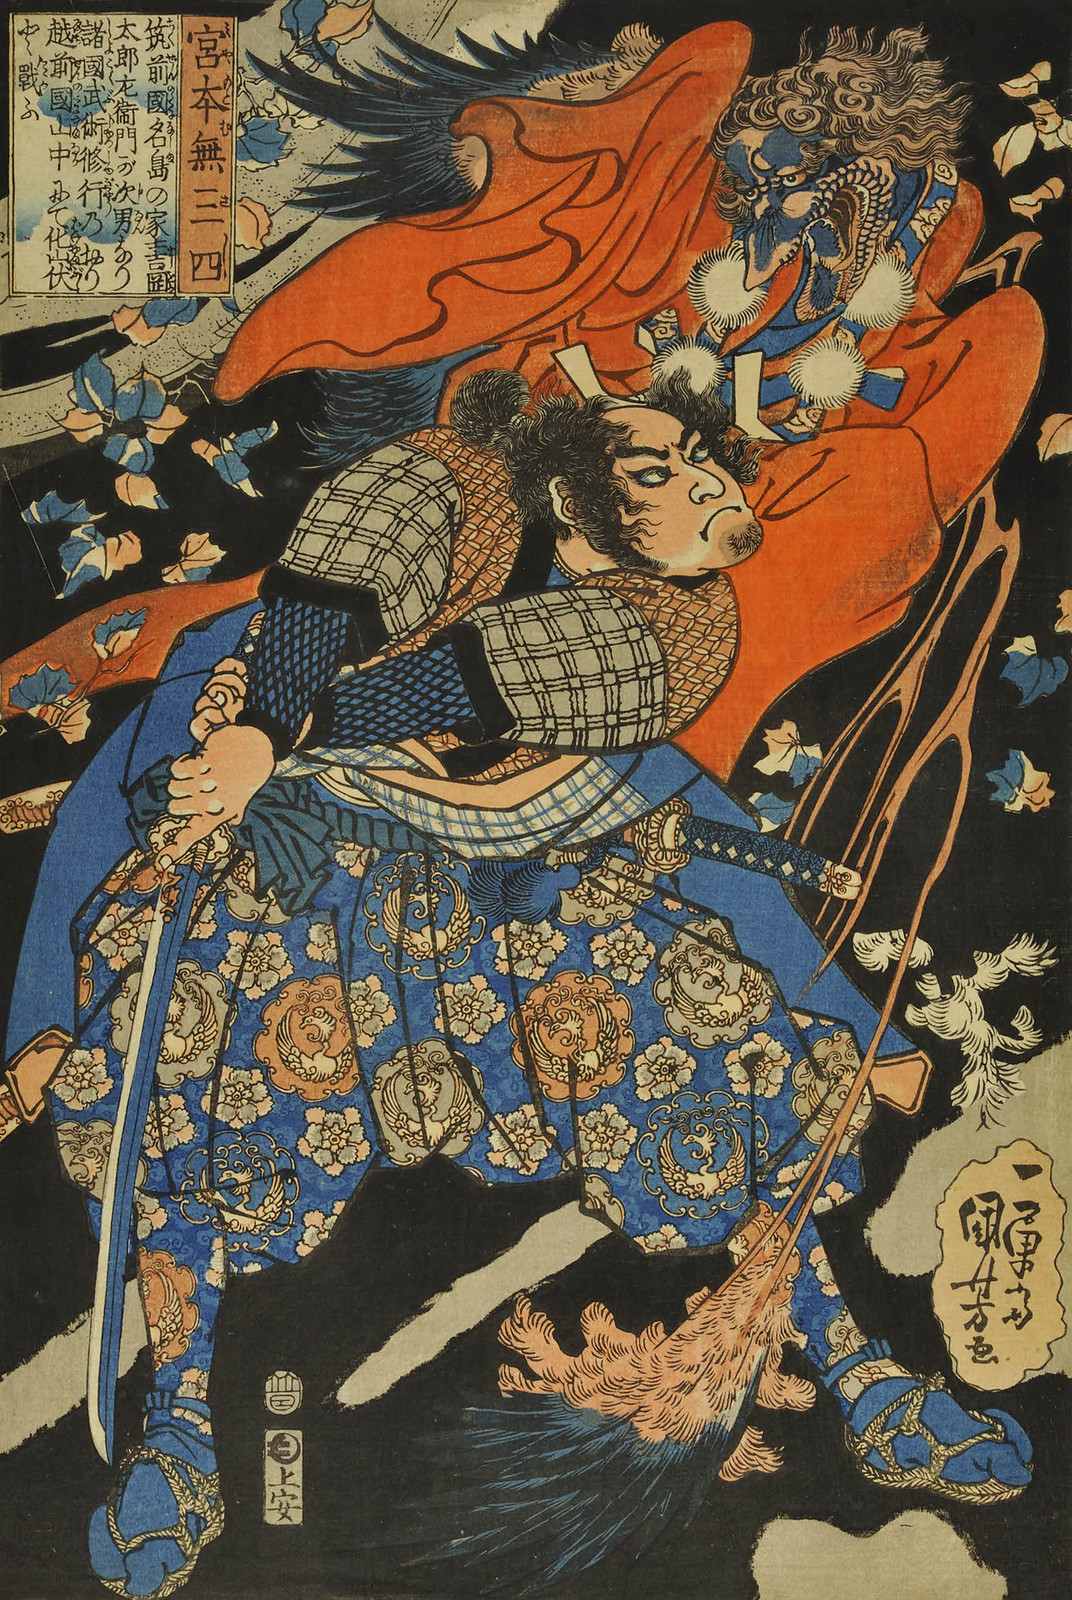 Utagawa Kuniyoshi - The famous swordsman Miyamoto Musashi battling with a mountain hermit who has turned into a monster. Edo Period